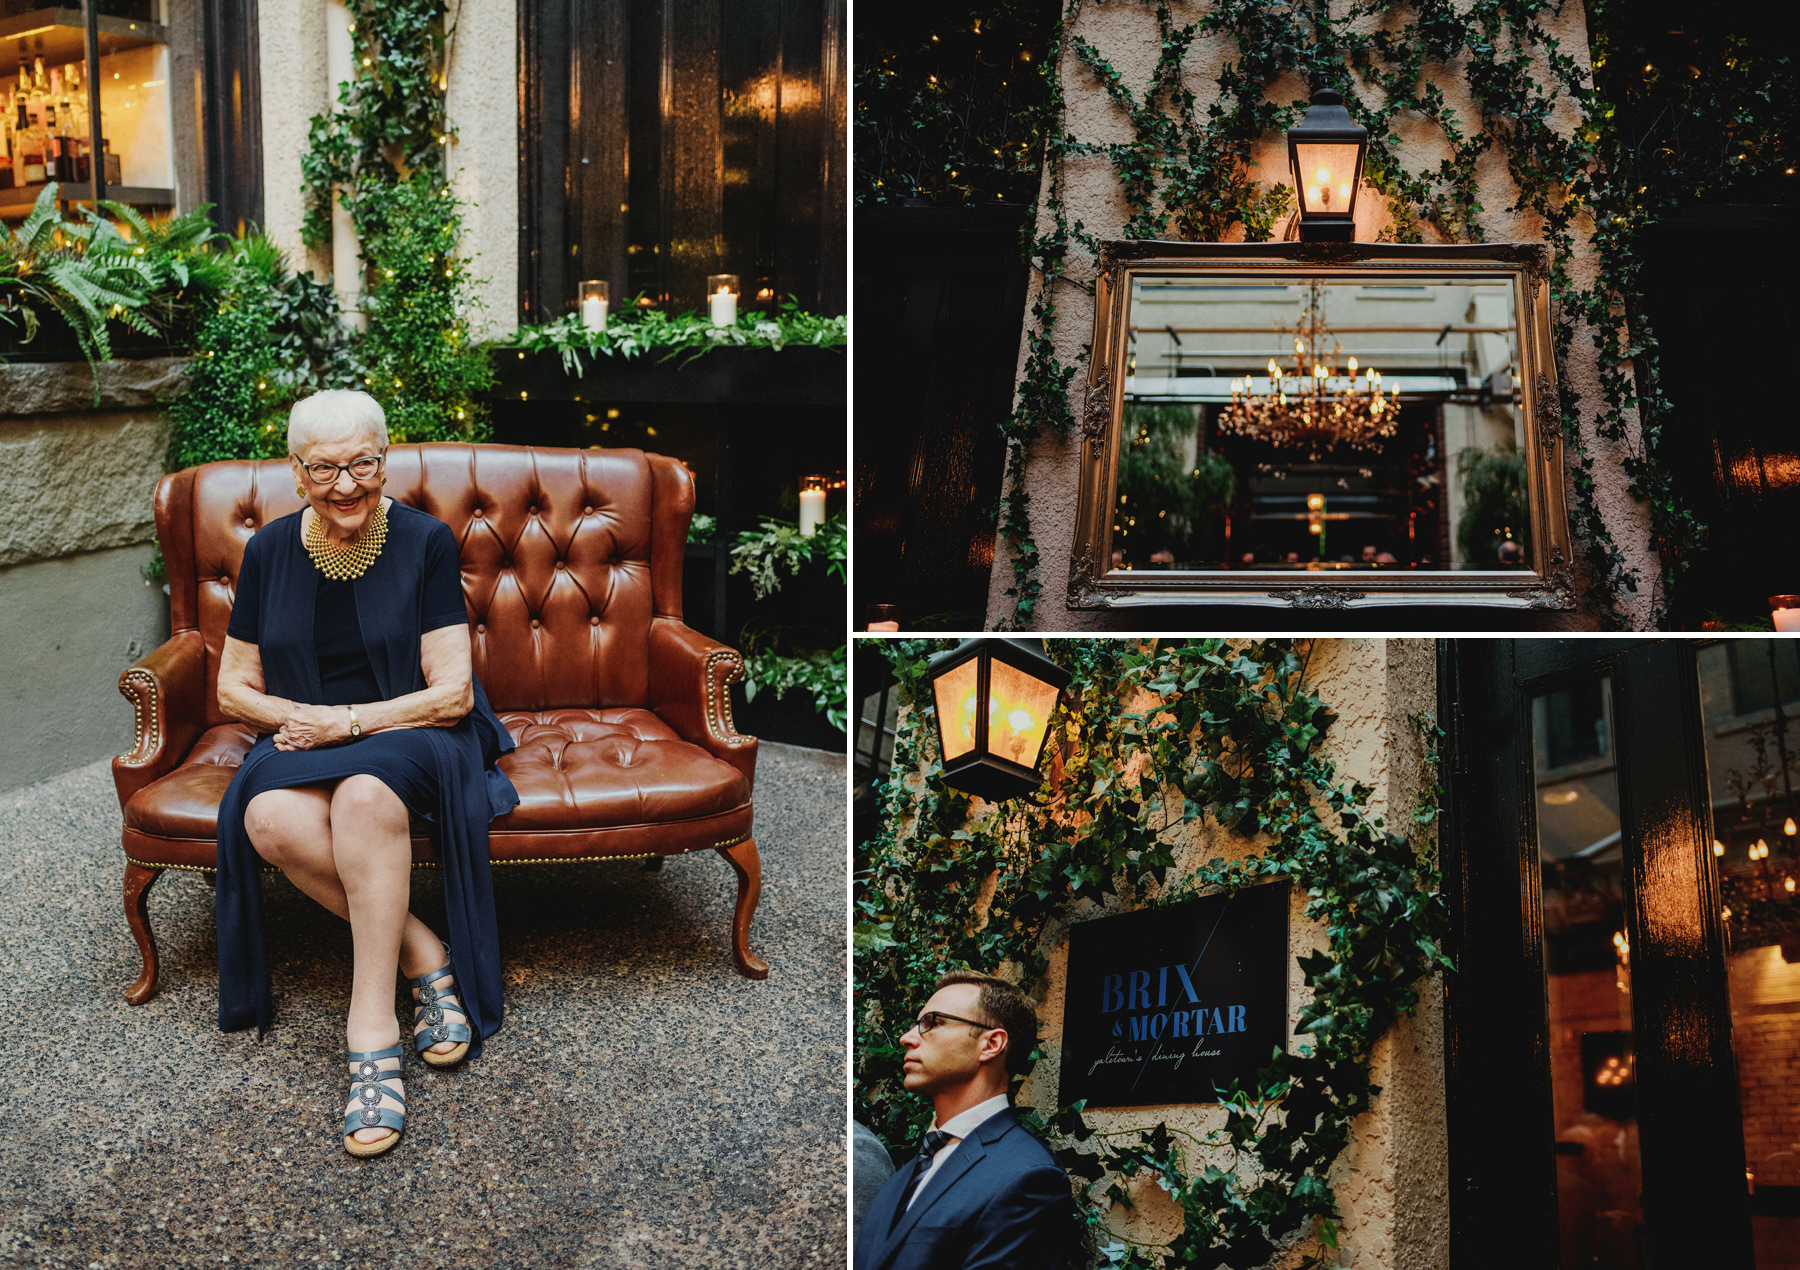 Brix & Mortar Wedding Photos